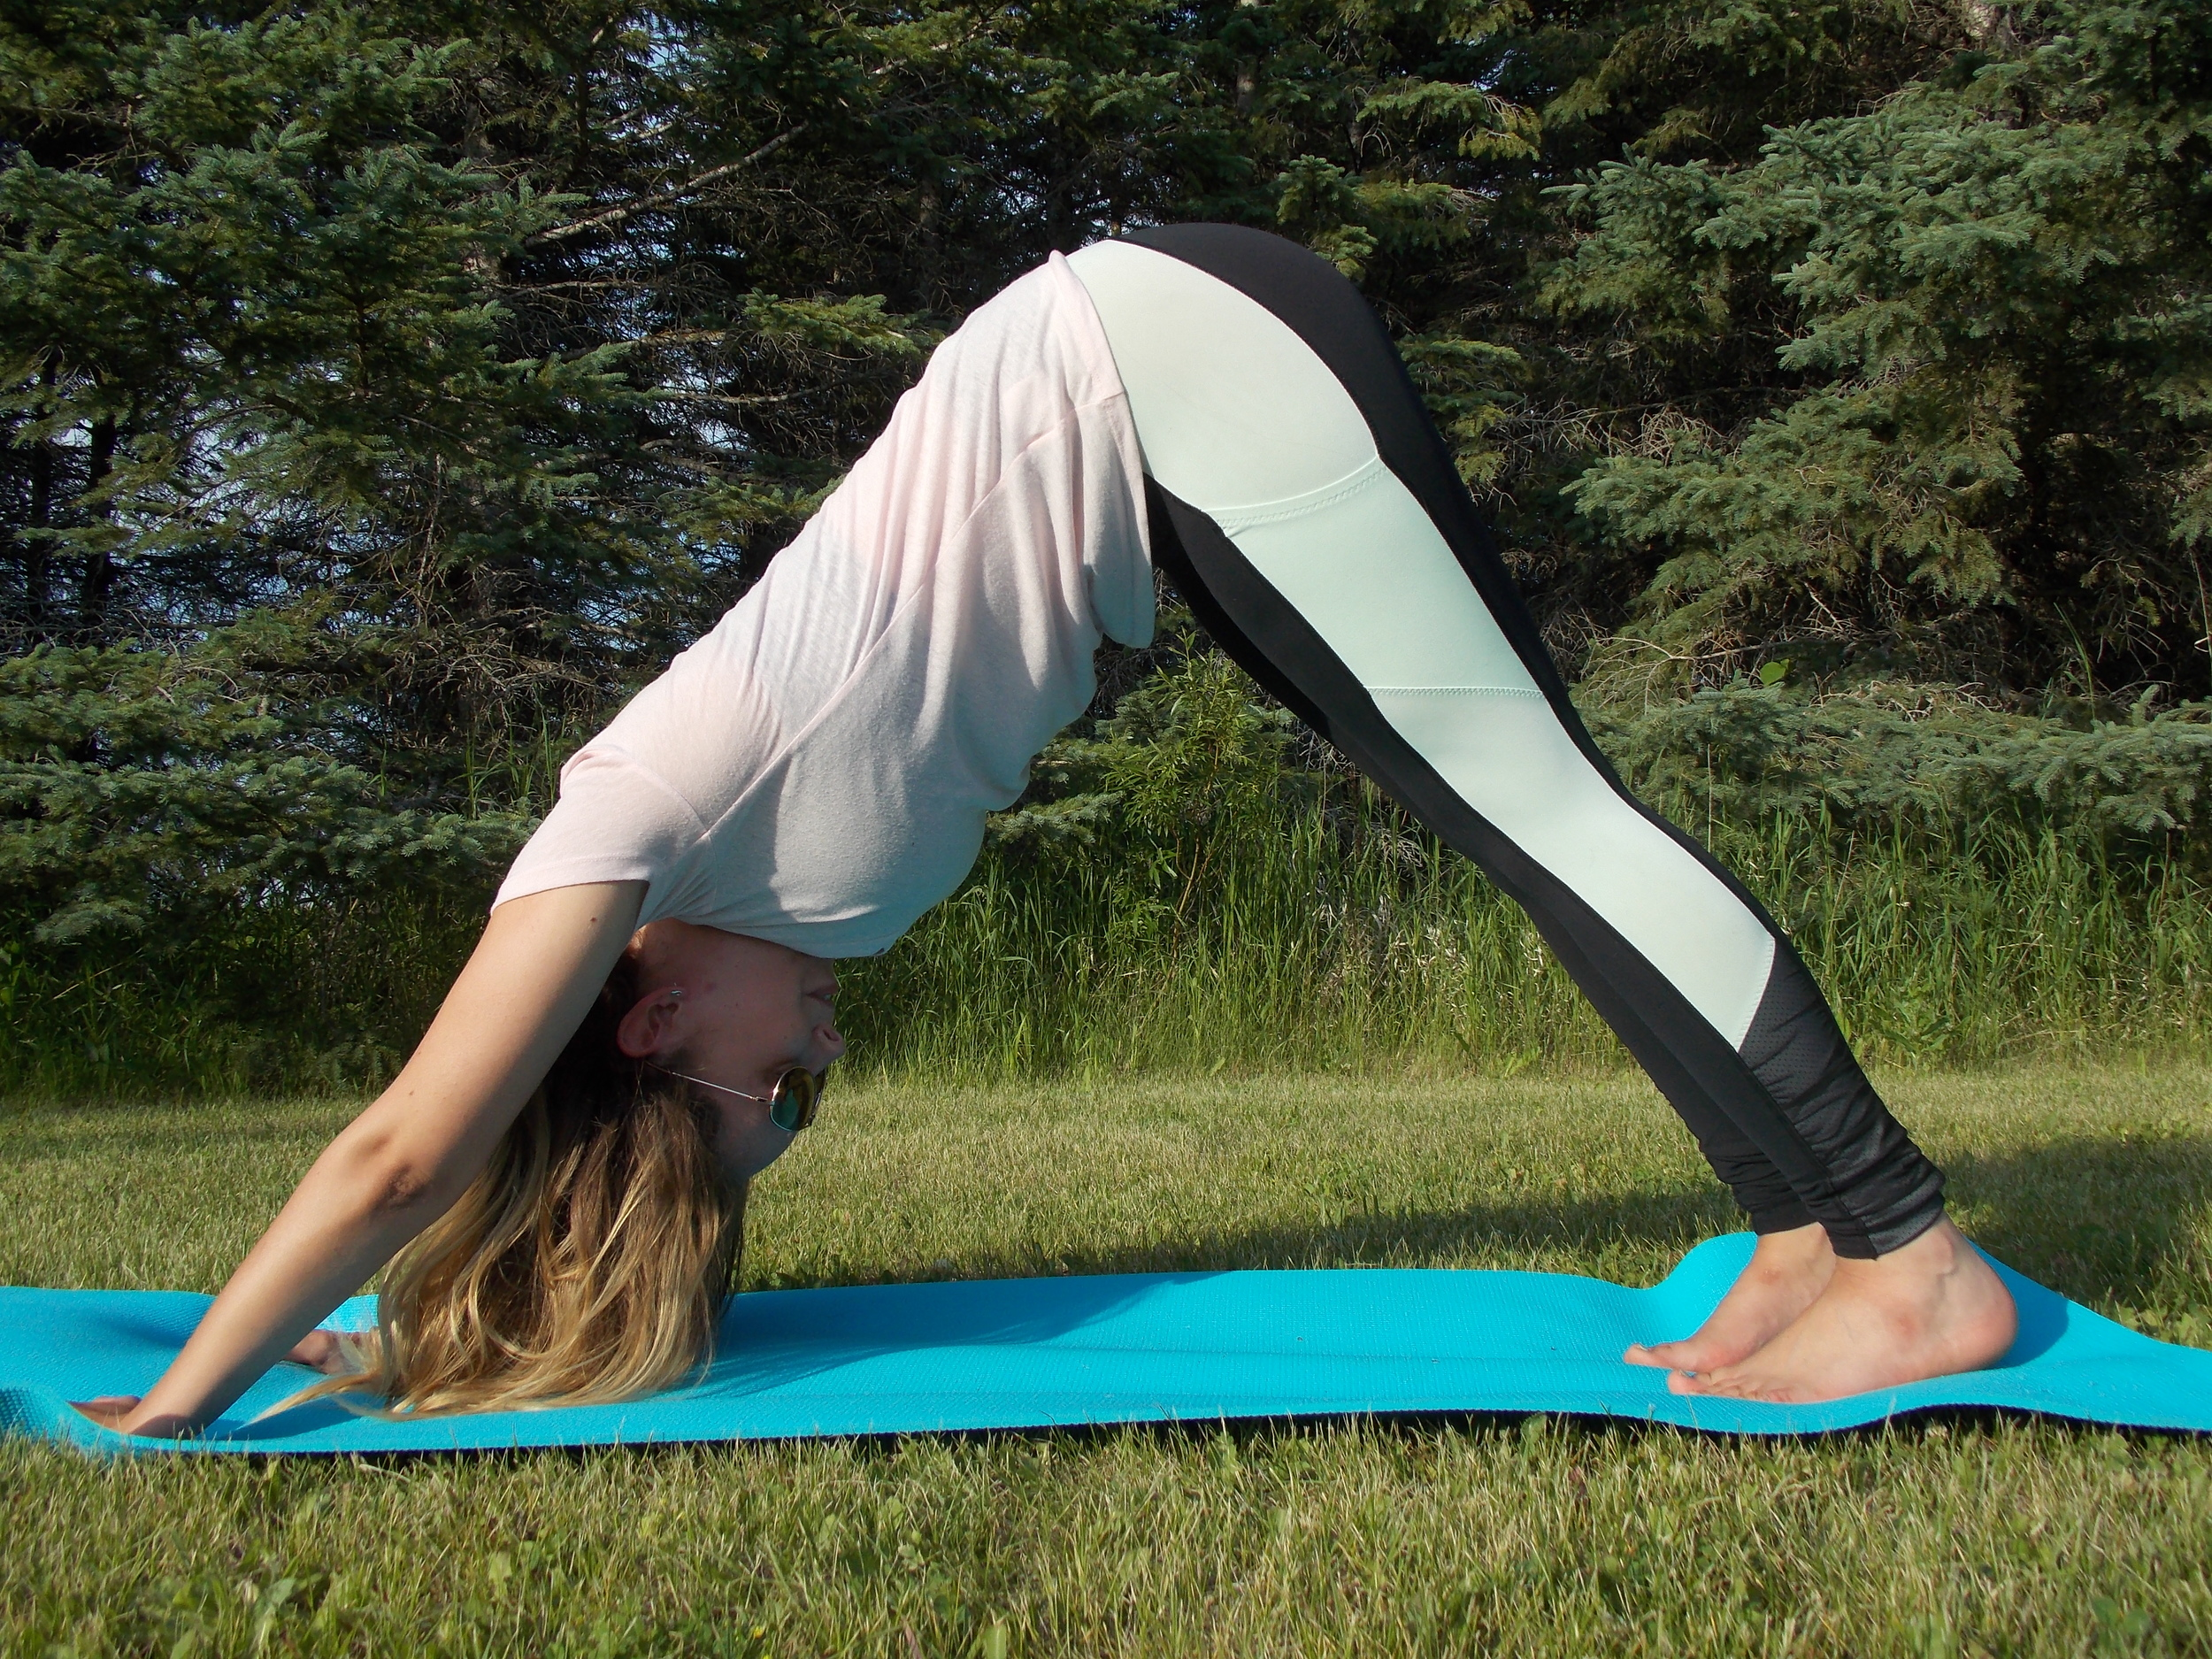 The classic: Downward Dog